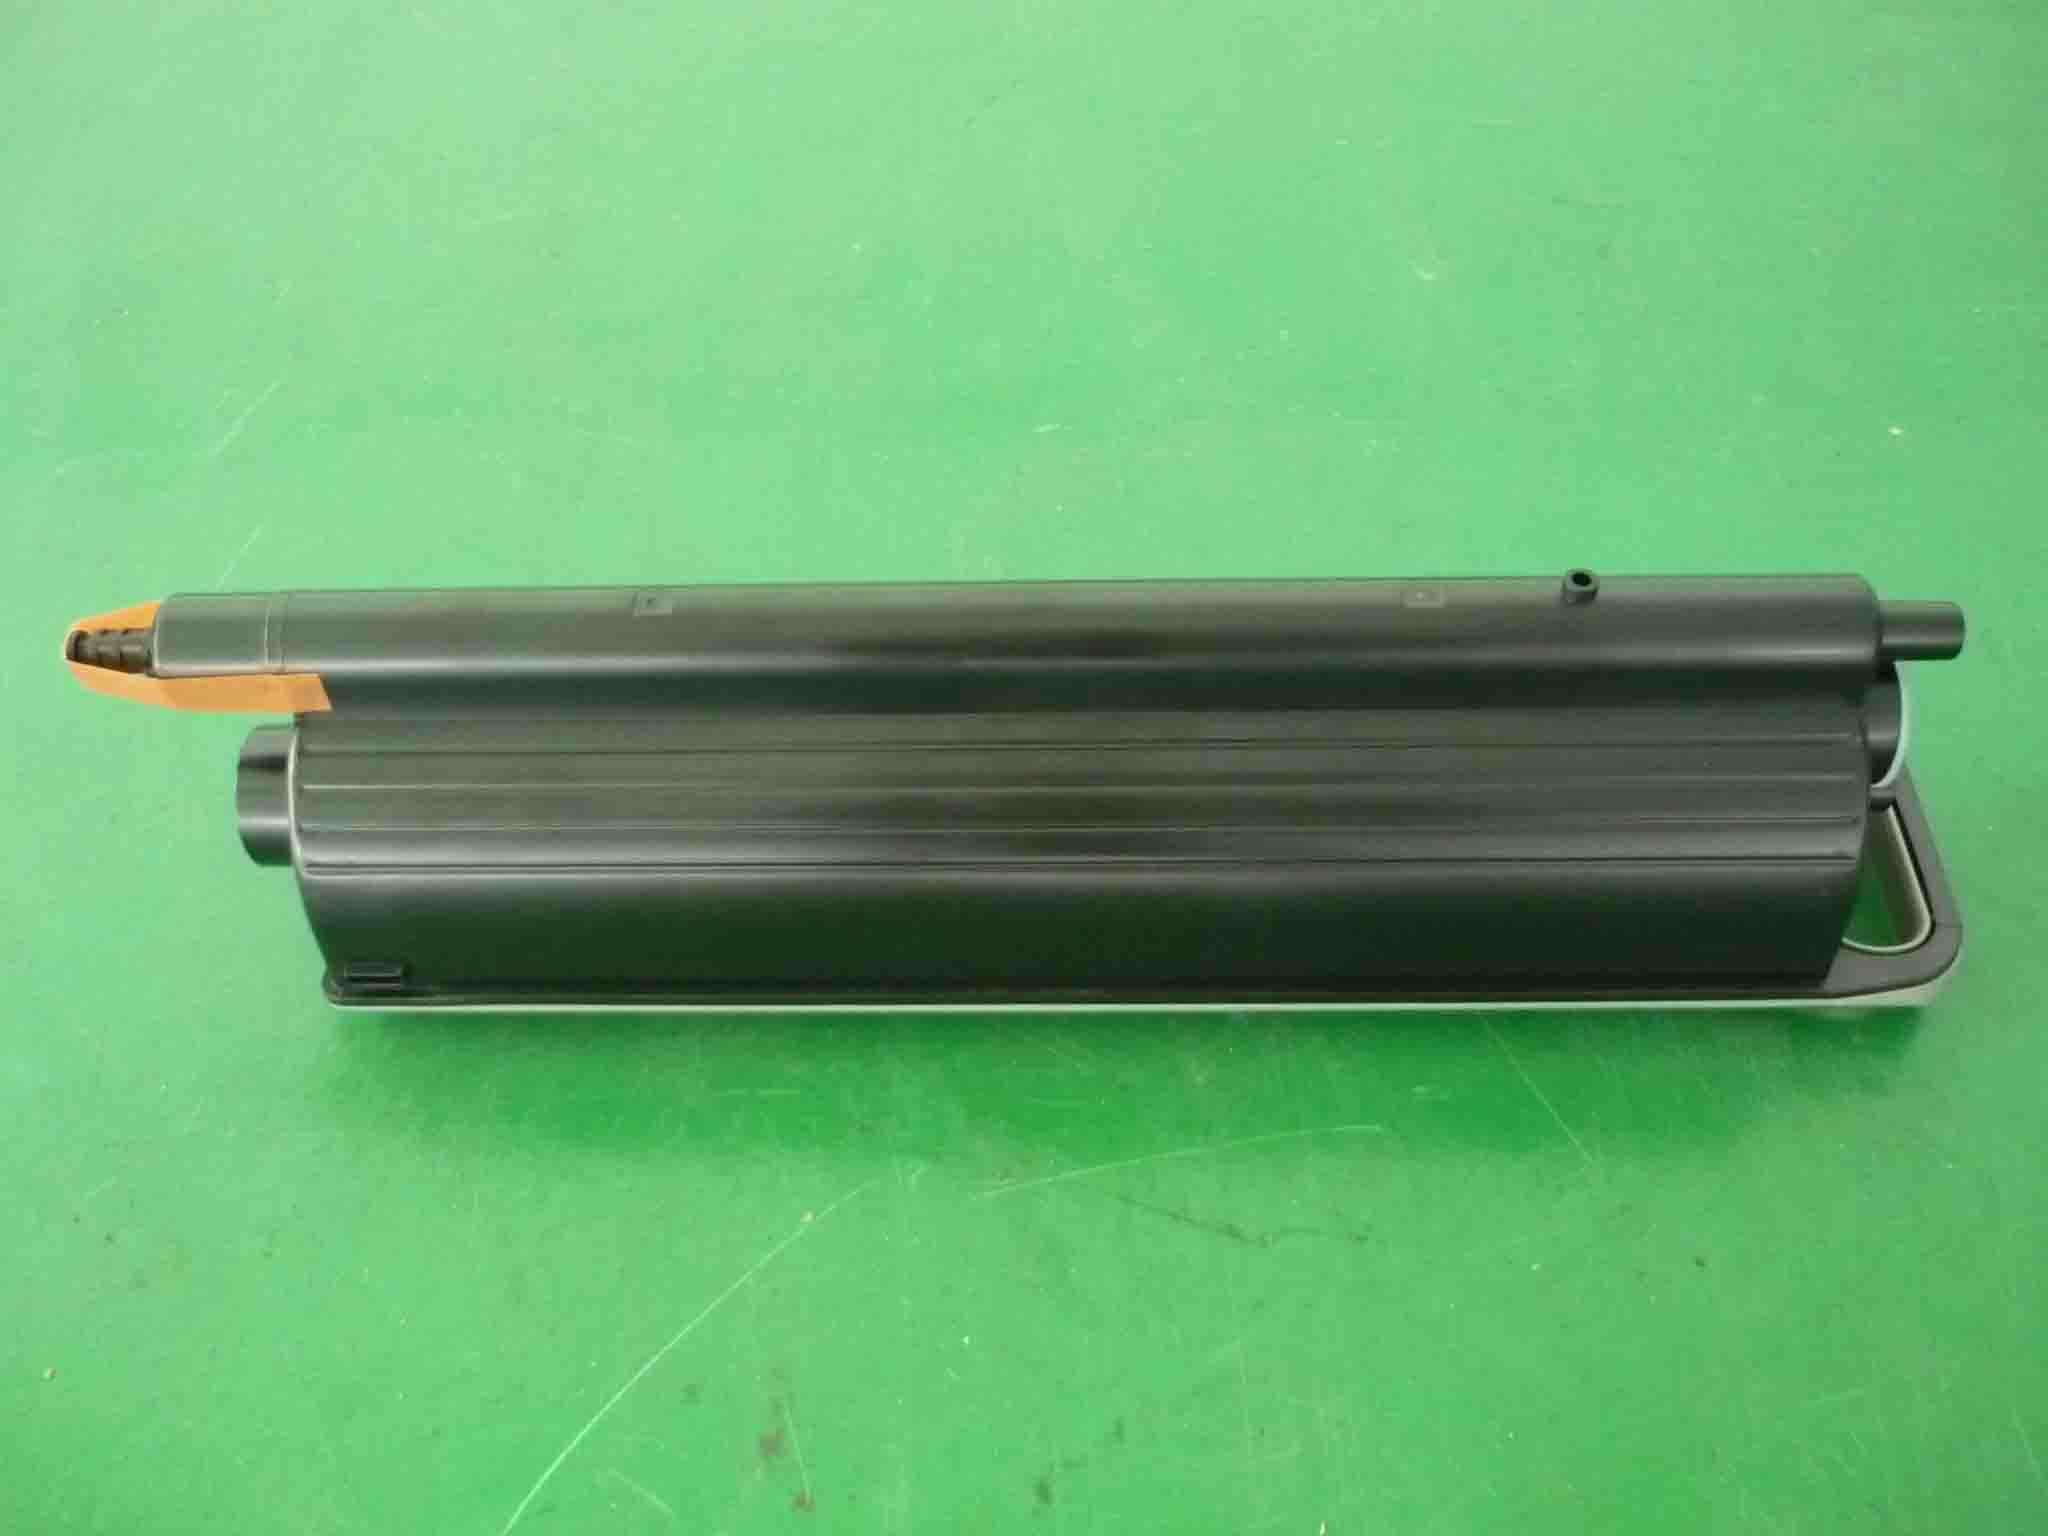 Compatible Copier Toner Cartridge for Canon IR-8500/IR-105/IR-9070/Gp-605 (NPG-19, GPR-7)